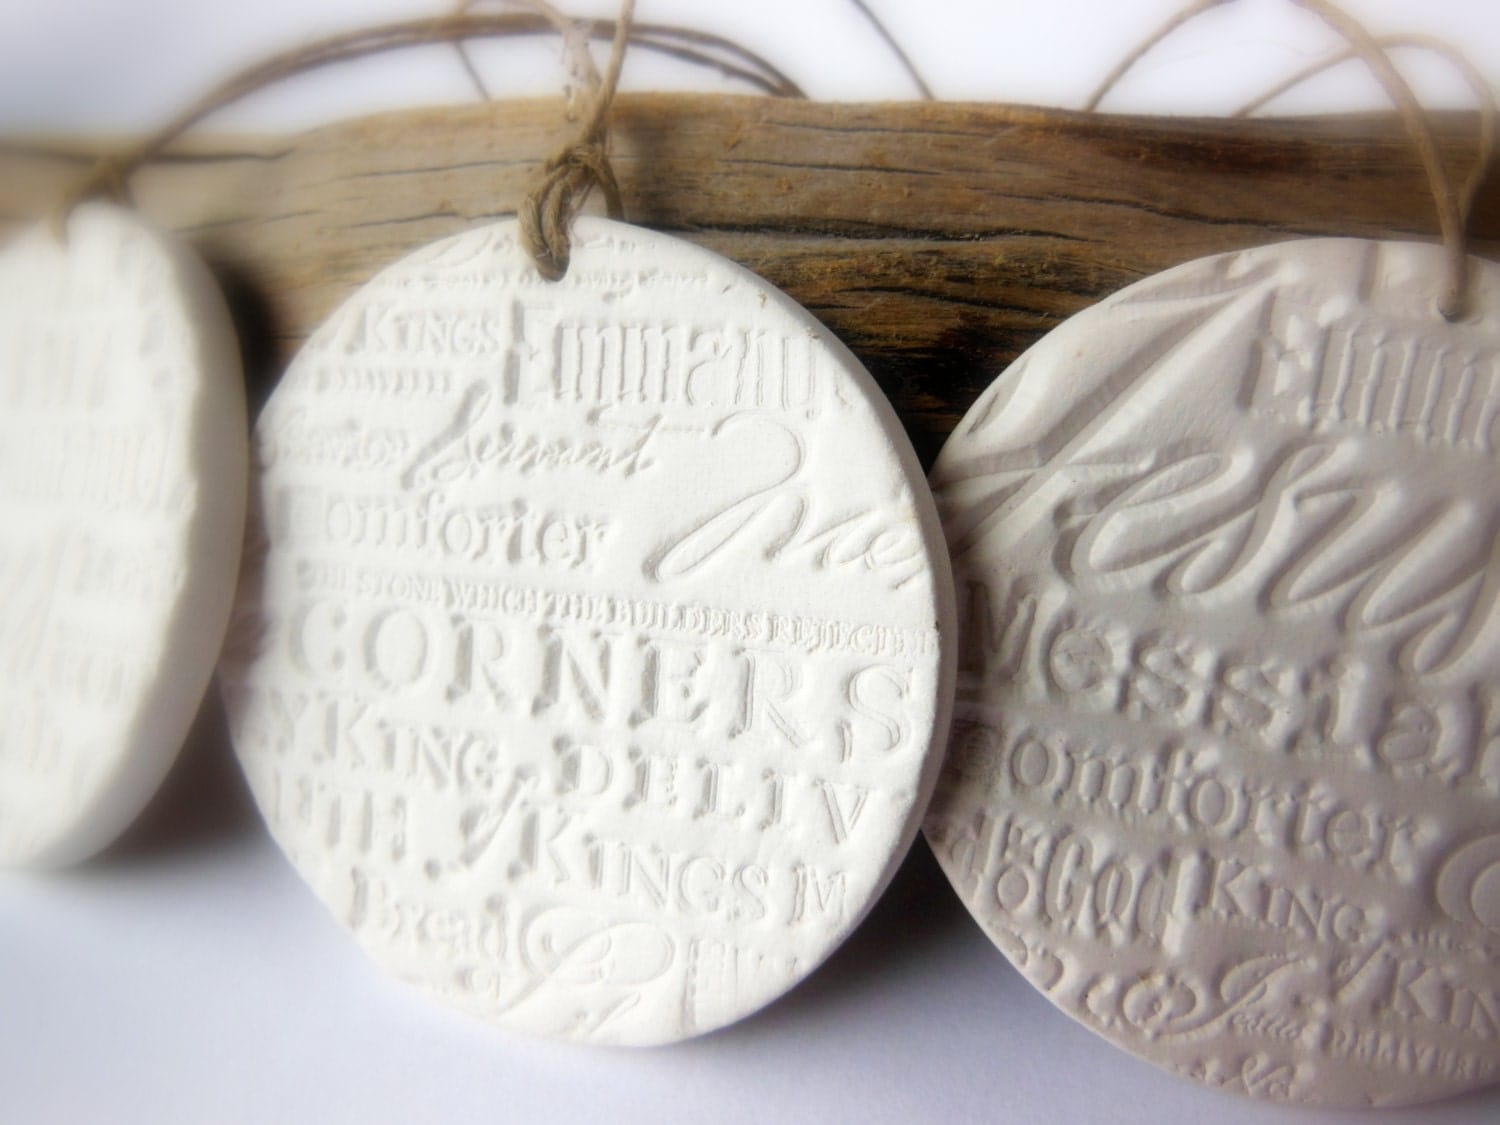 Set of 3 Religious Handmade Ceramic Christmas Ornaments, Unglazed Bisque Round White Pottery Decoration, Names for Christ, Jesus, Messiah - ThisOnesMineDesigns